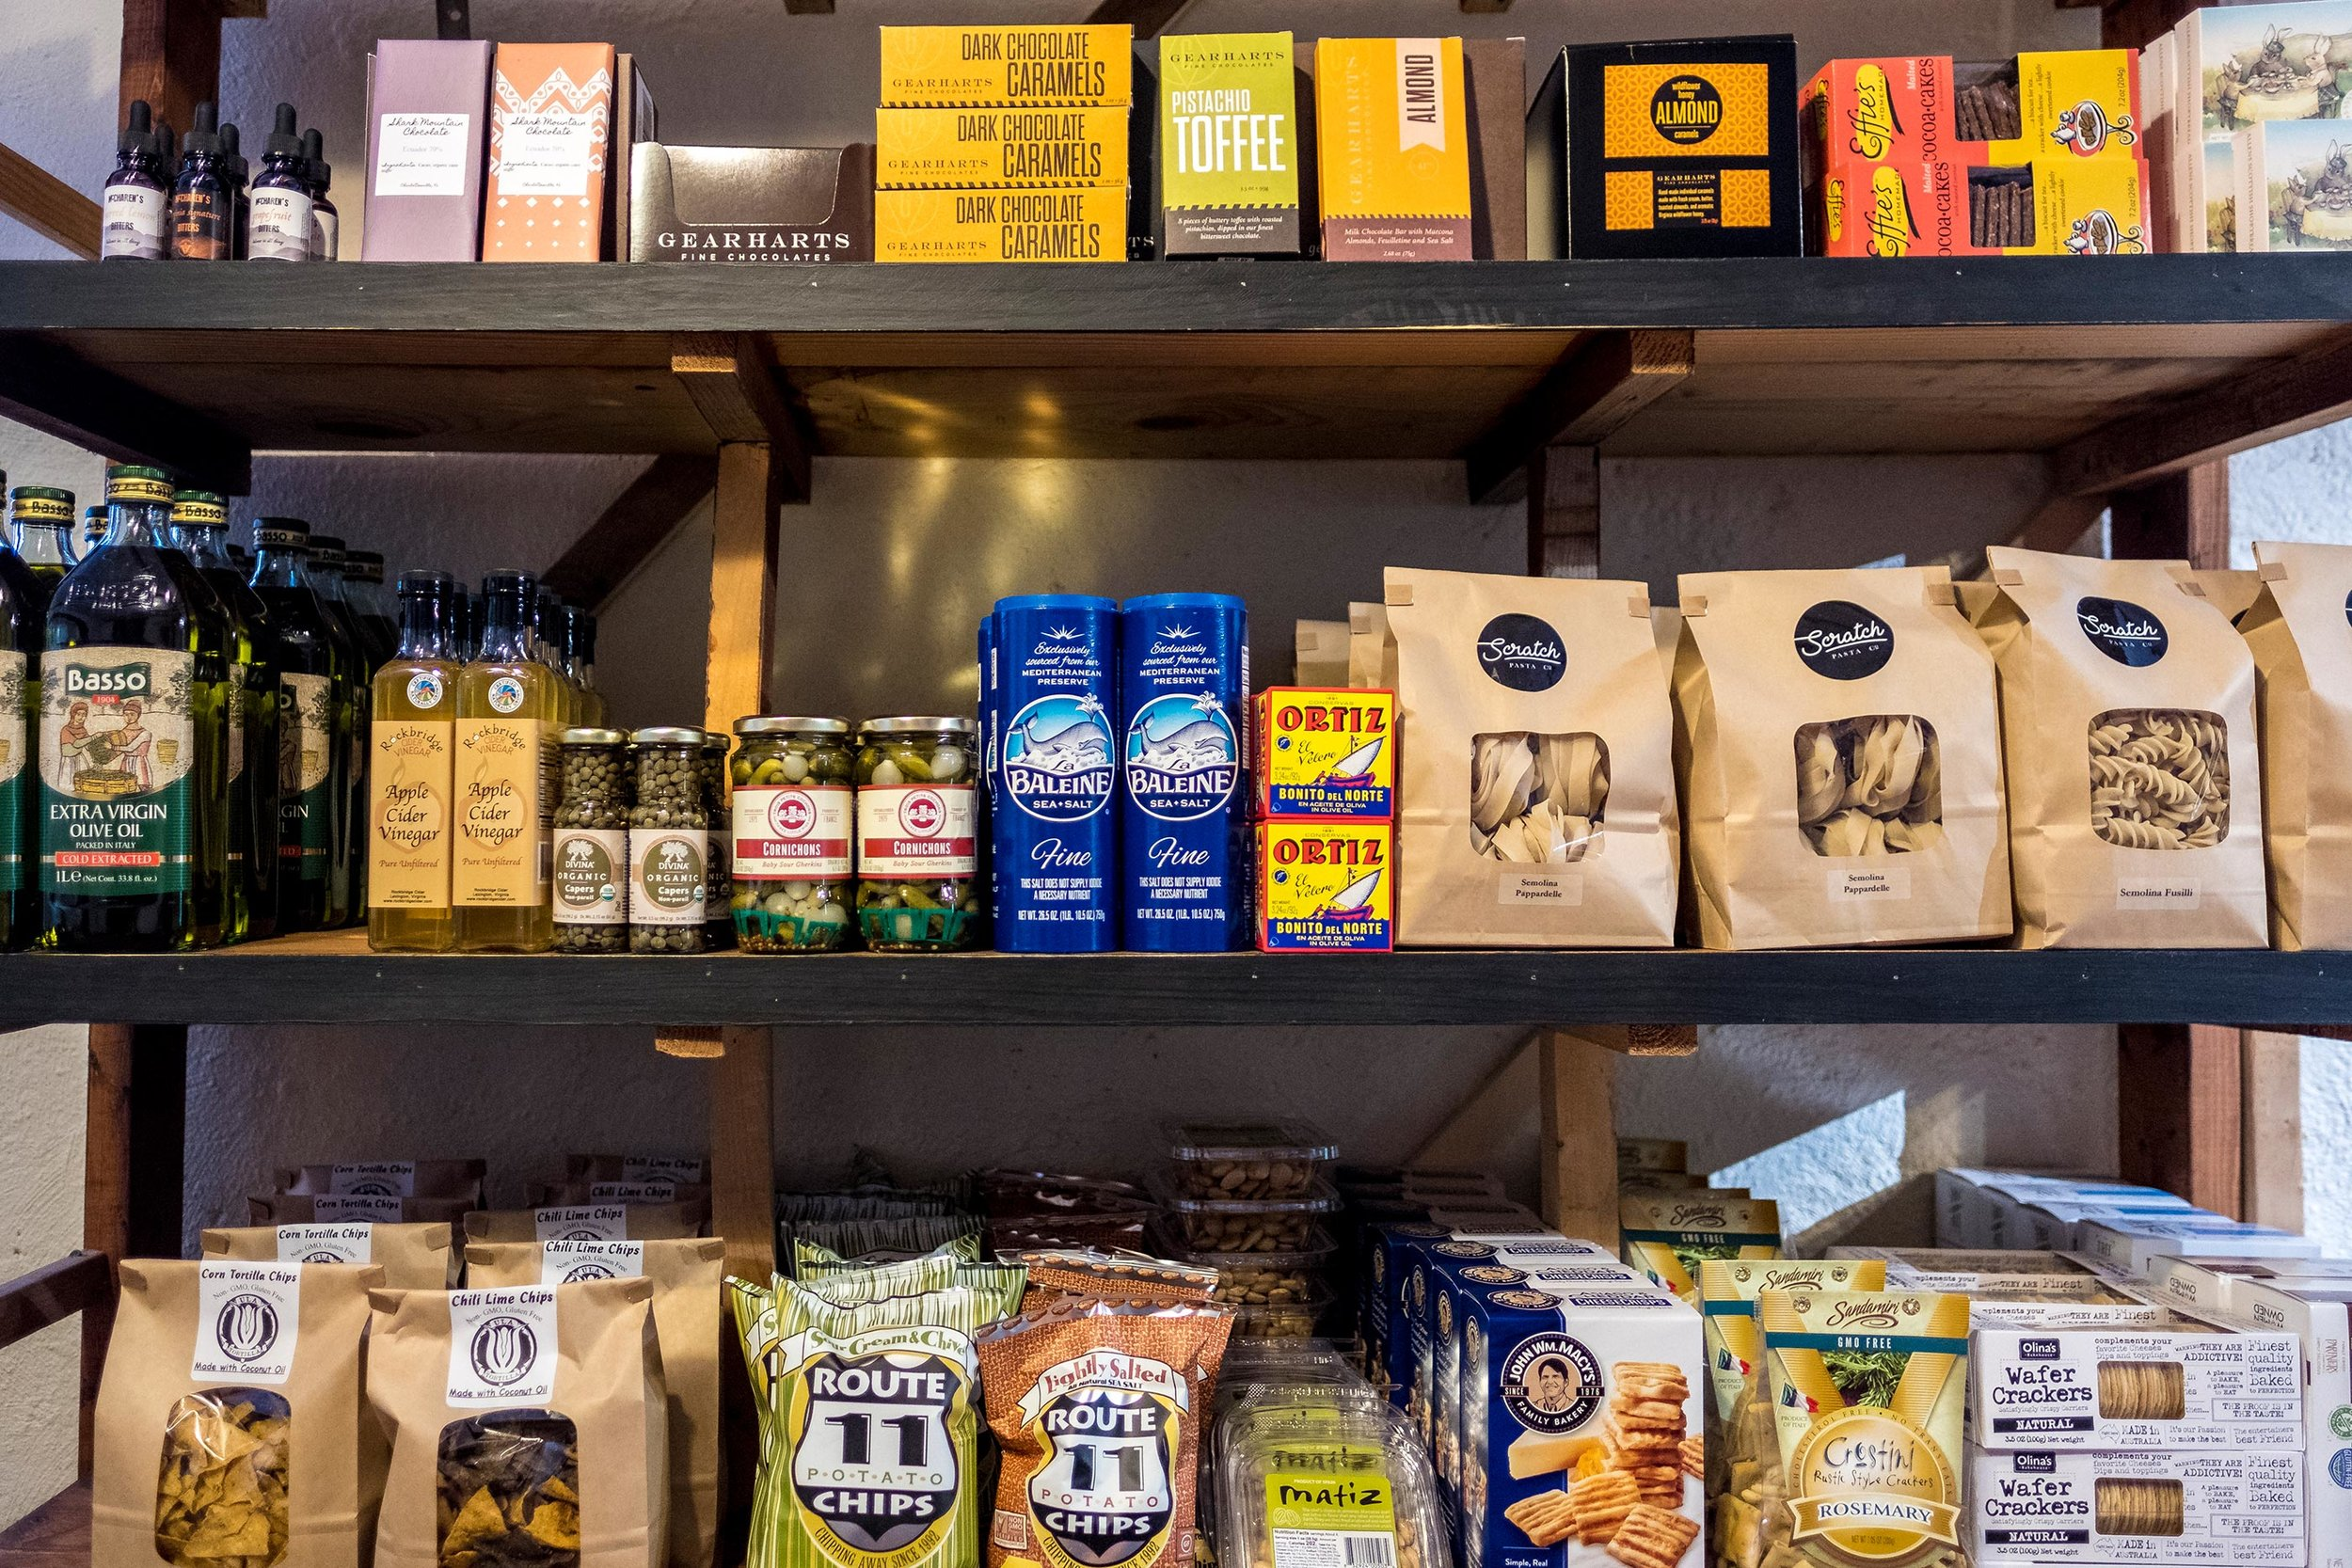 Gourmet Foods - We have a delightful little selection of local and international foods perfect for gift baskets, simple meals and snack boards to pair with your wine or beer choices.